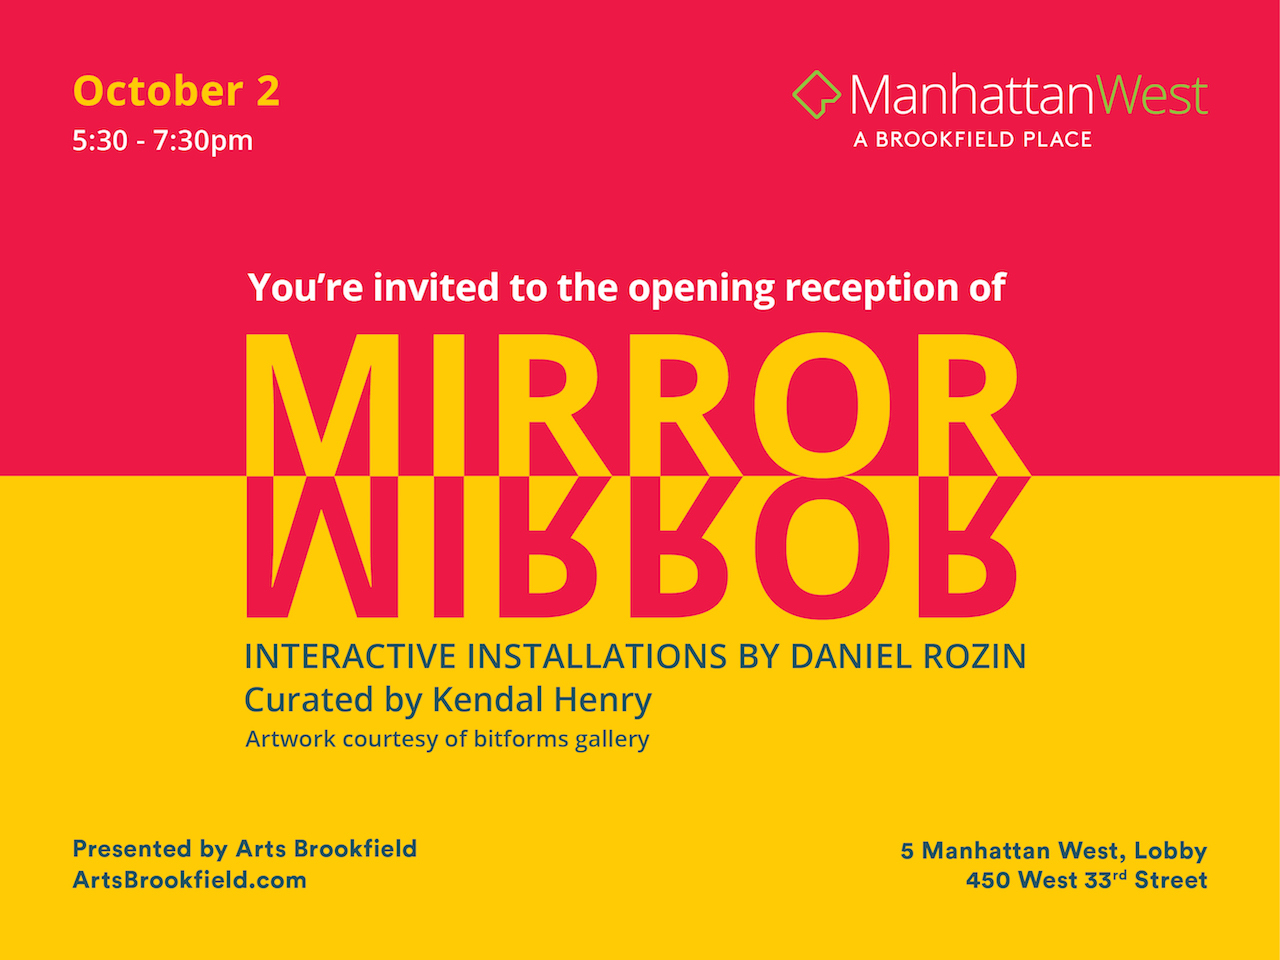 Show Card, which reads Mirror Mirror, Interactive Installations by Daniel Rozin, October 2nd, 5:30pm-7:30pm